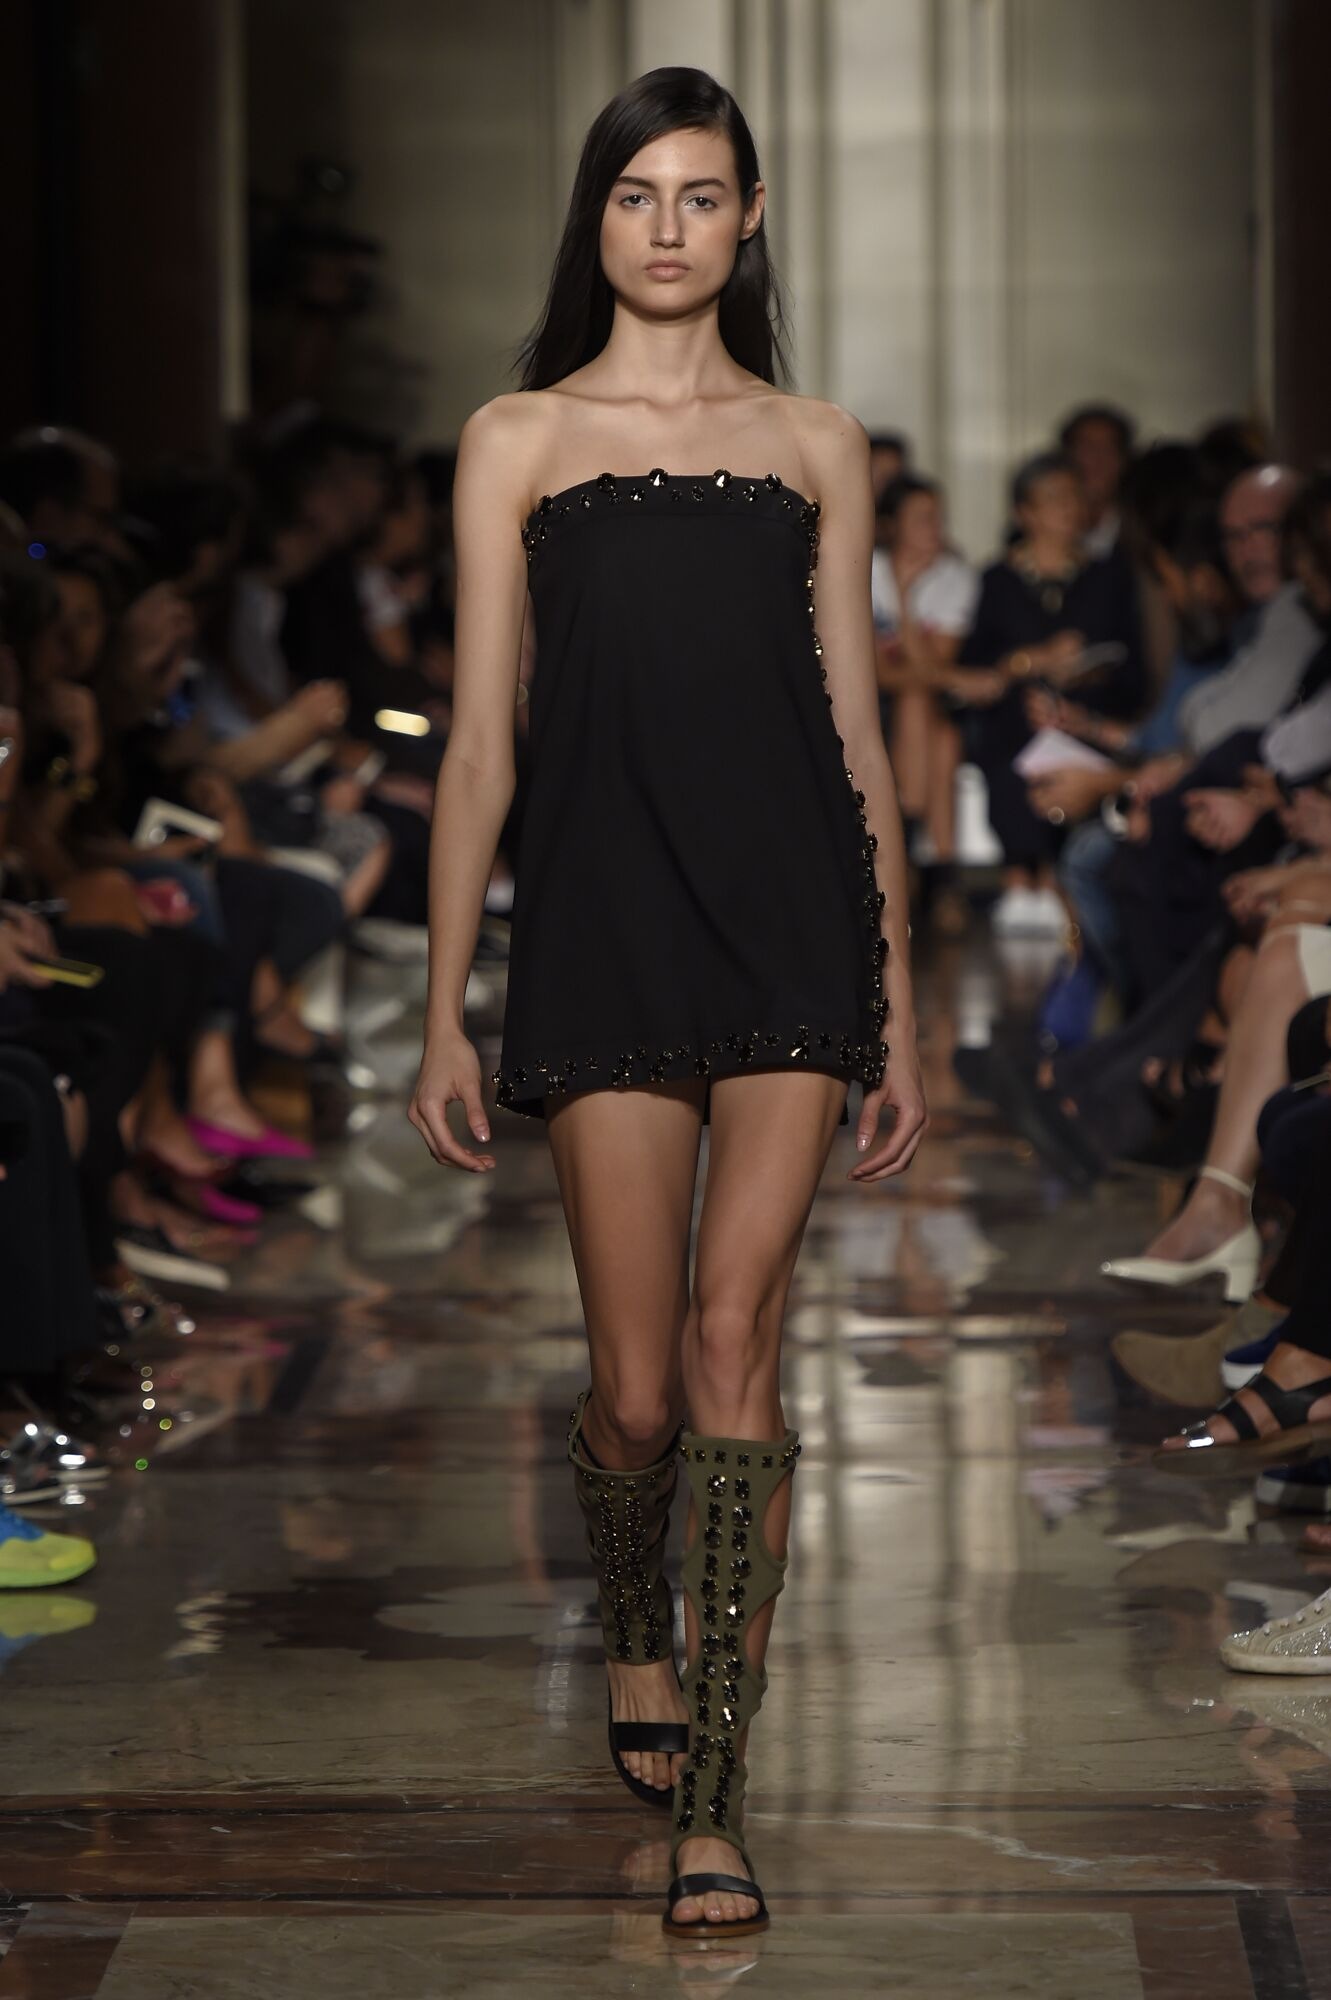 Andrea Incontri Summer 2015 Catwalk Womenswear